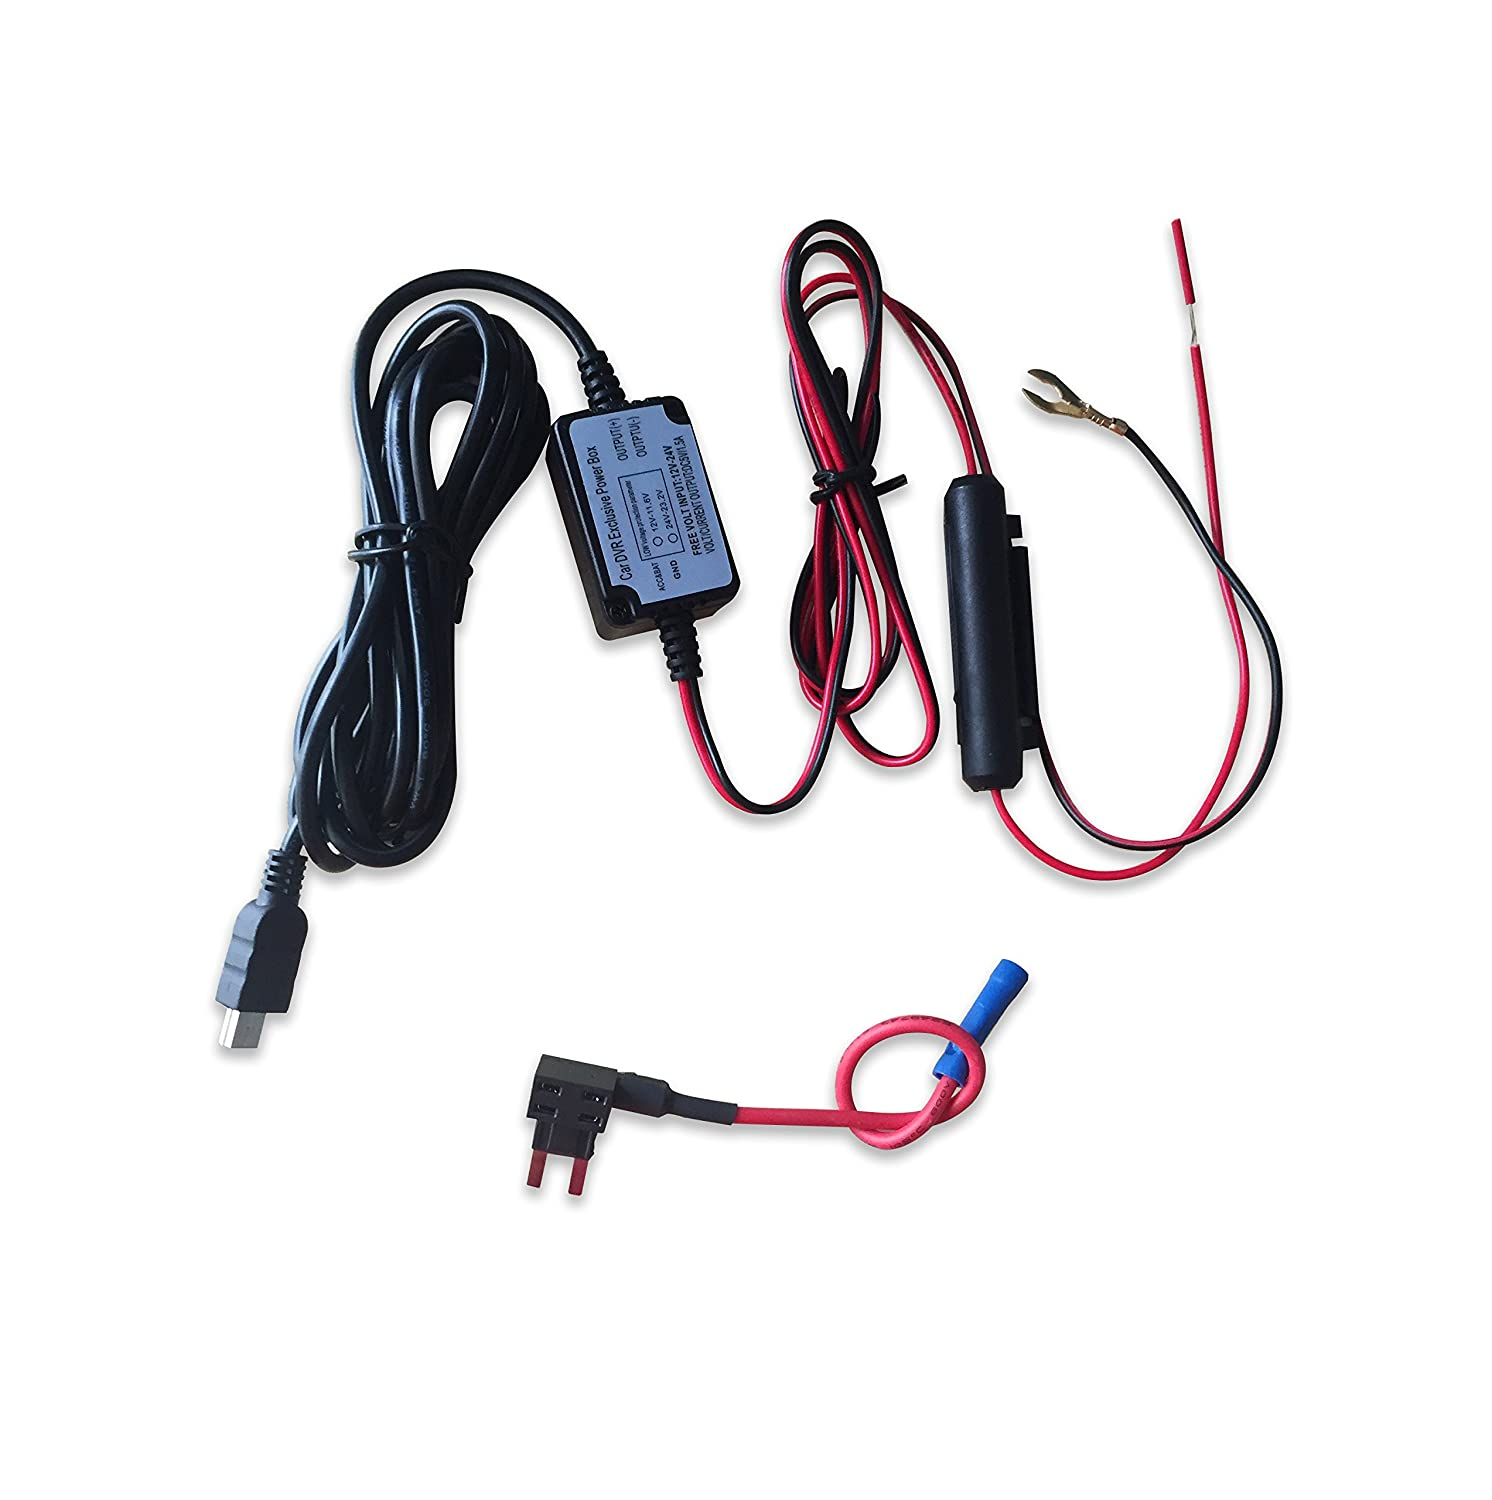 81vasrBJwWL._SL1500_ amazon com wocst car camera hard wire kit mini usb dash cam 10 House Fuse Box Diagram at aneh.co